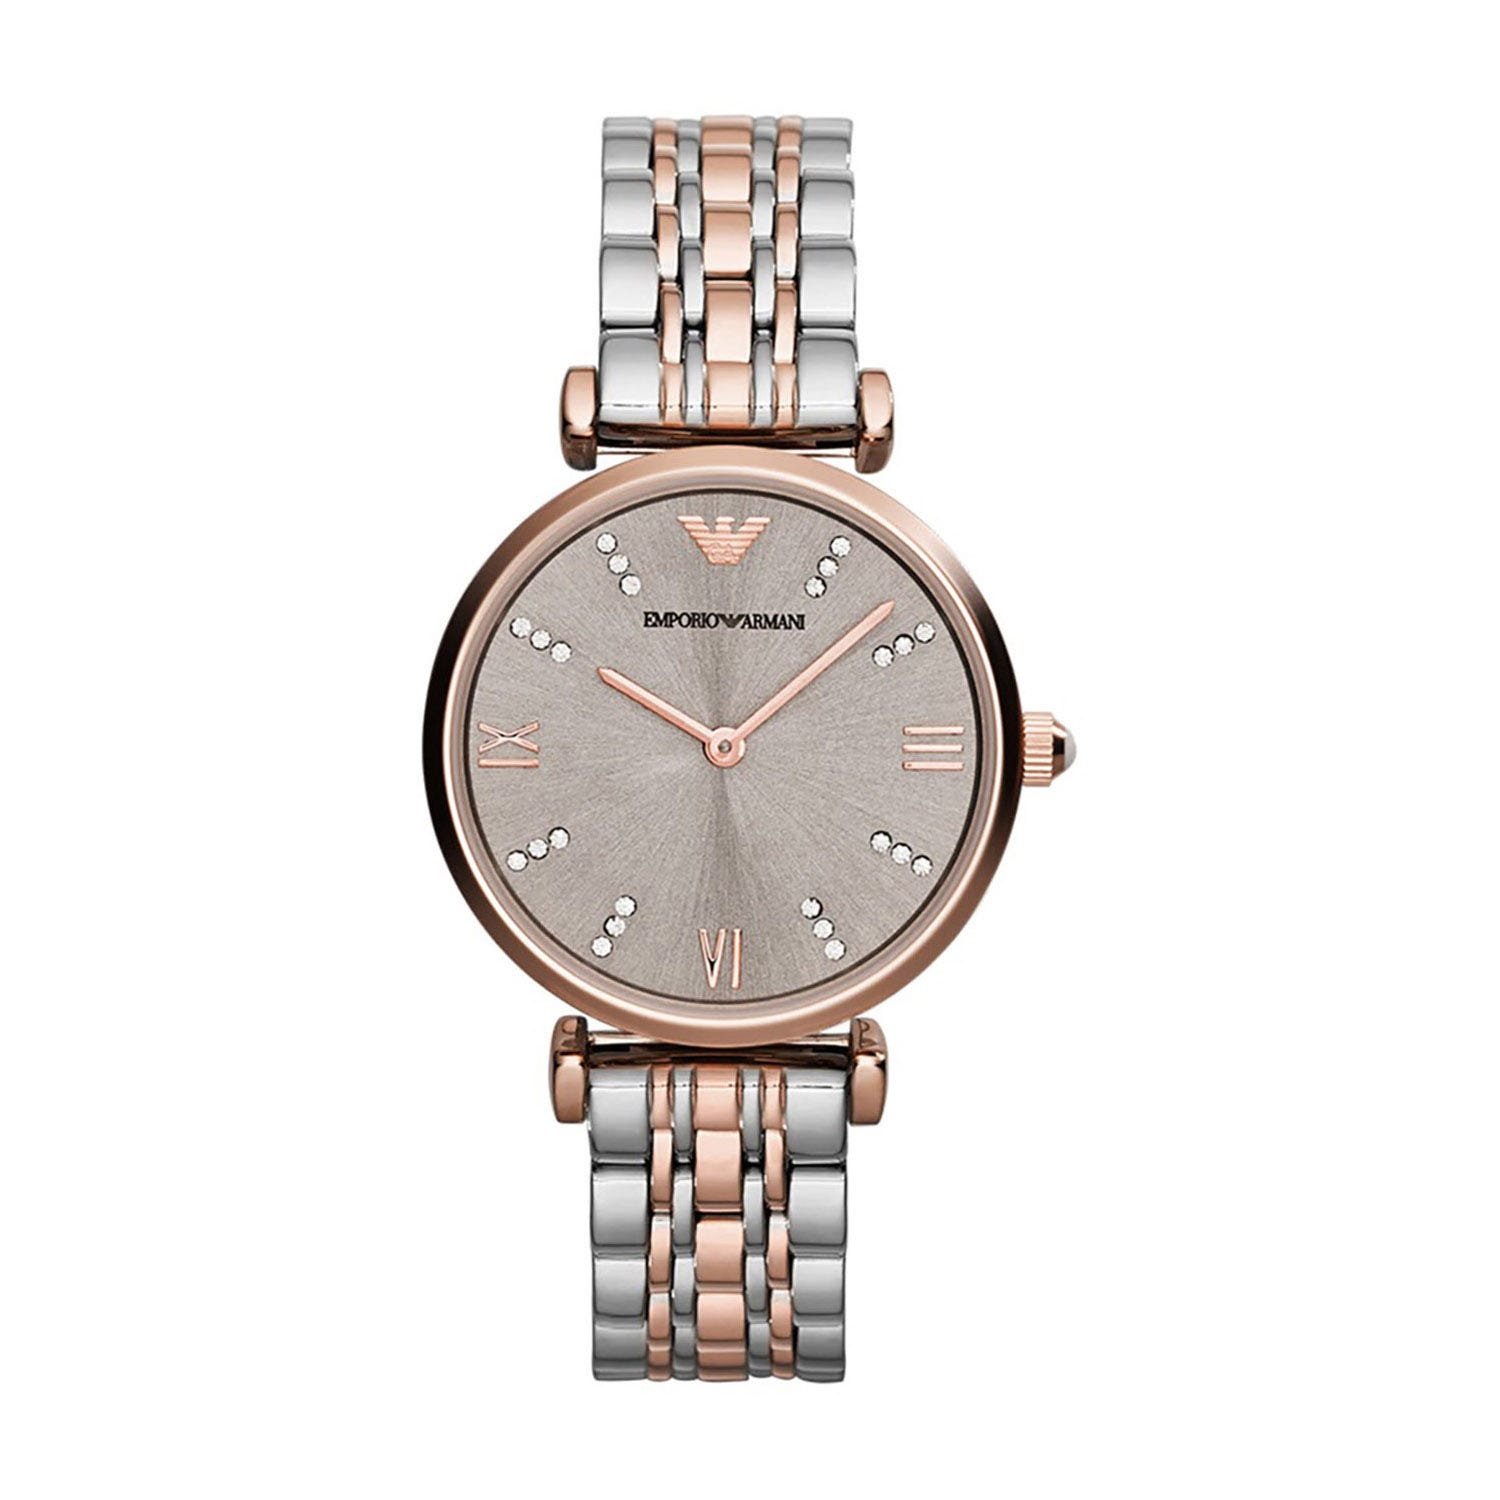 Emporio Armani T-Bar Champ Crystal Dial Rose Two Tone Bracelet